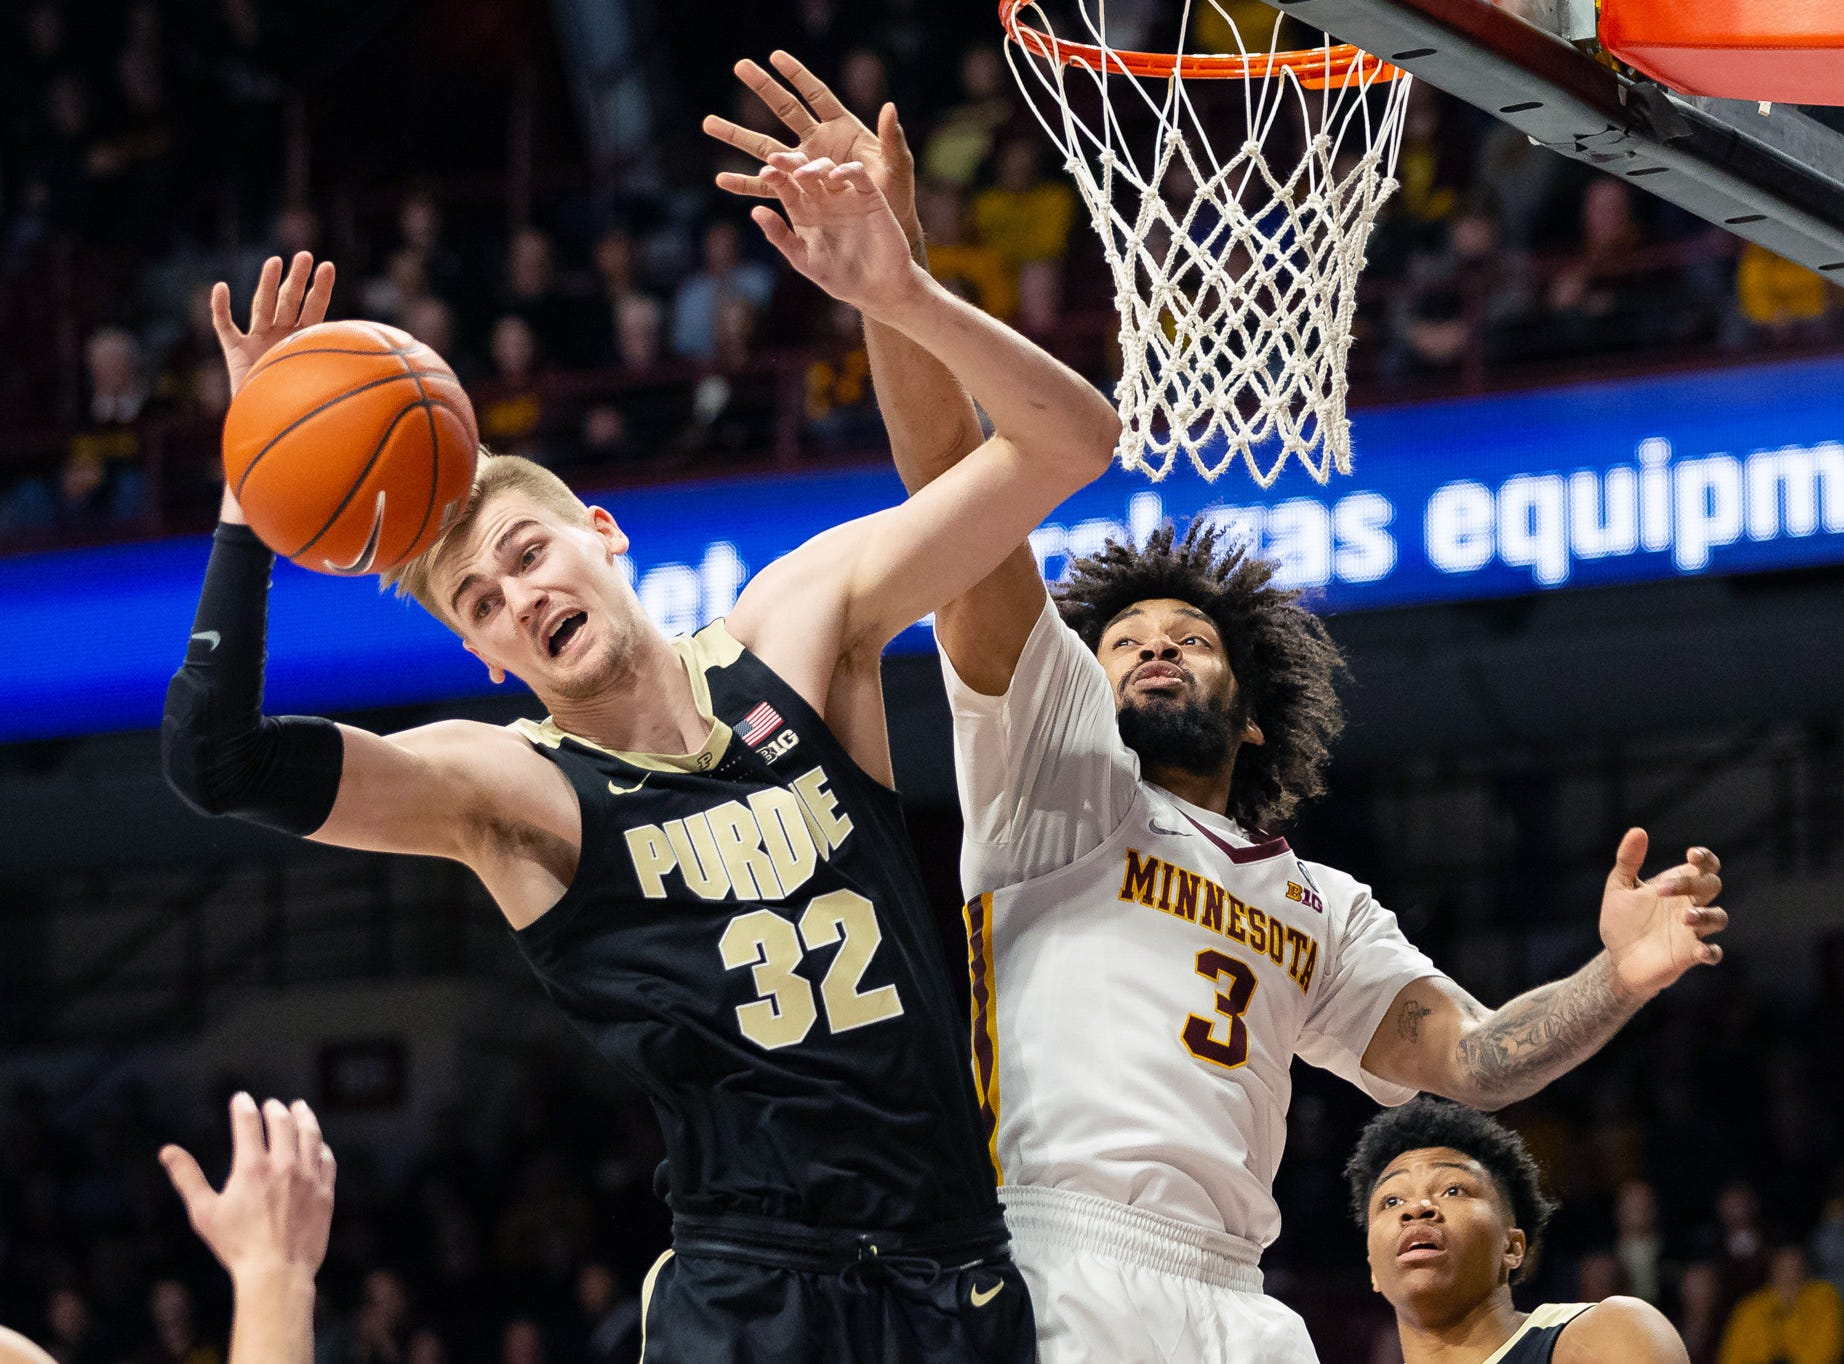 Mar 5, 2019; Minneapolis, MN, USA; Minnesota Gophers forward Jordan Murphy (3) and Purdue Boilermakers center Matt Haarms (32) fight for the ball during the first half at Williams Arena. Mandatory Credit: Harrison Barden-USA TODAY Sports